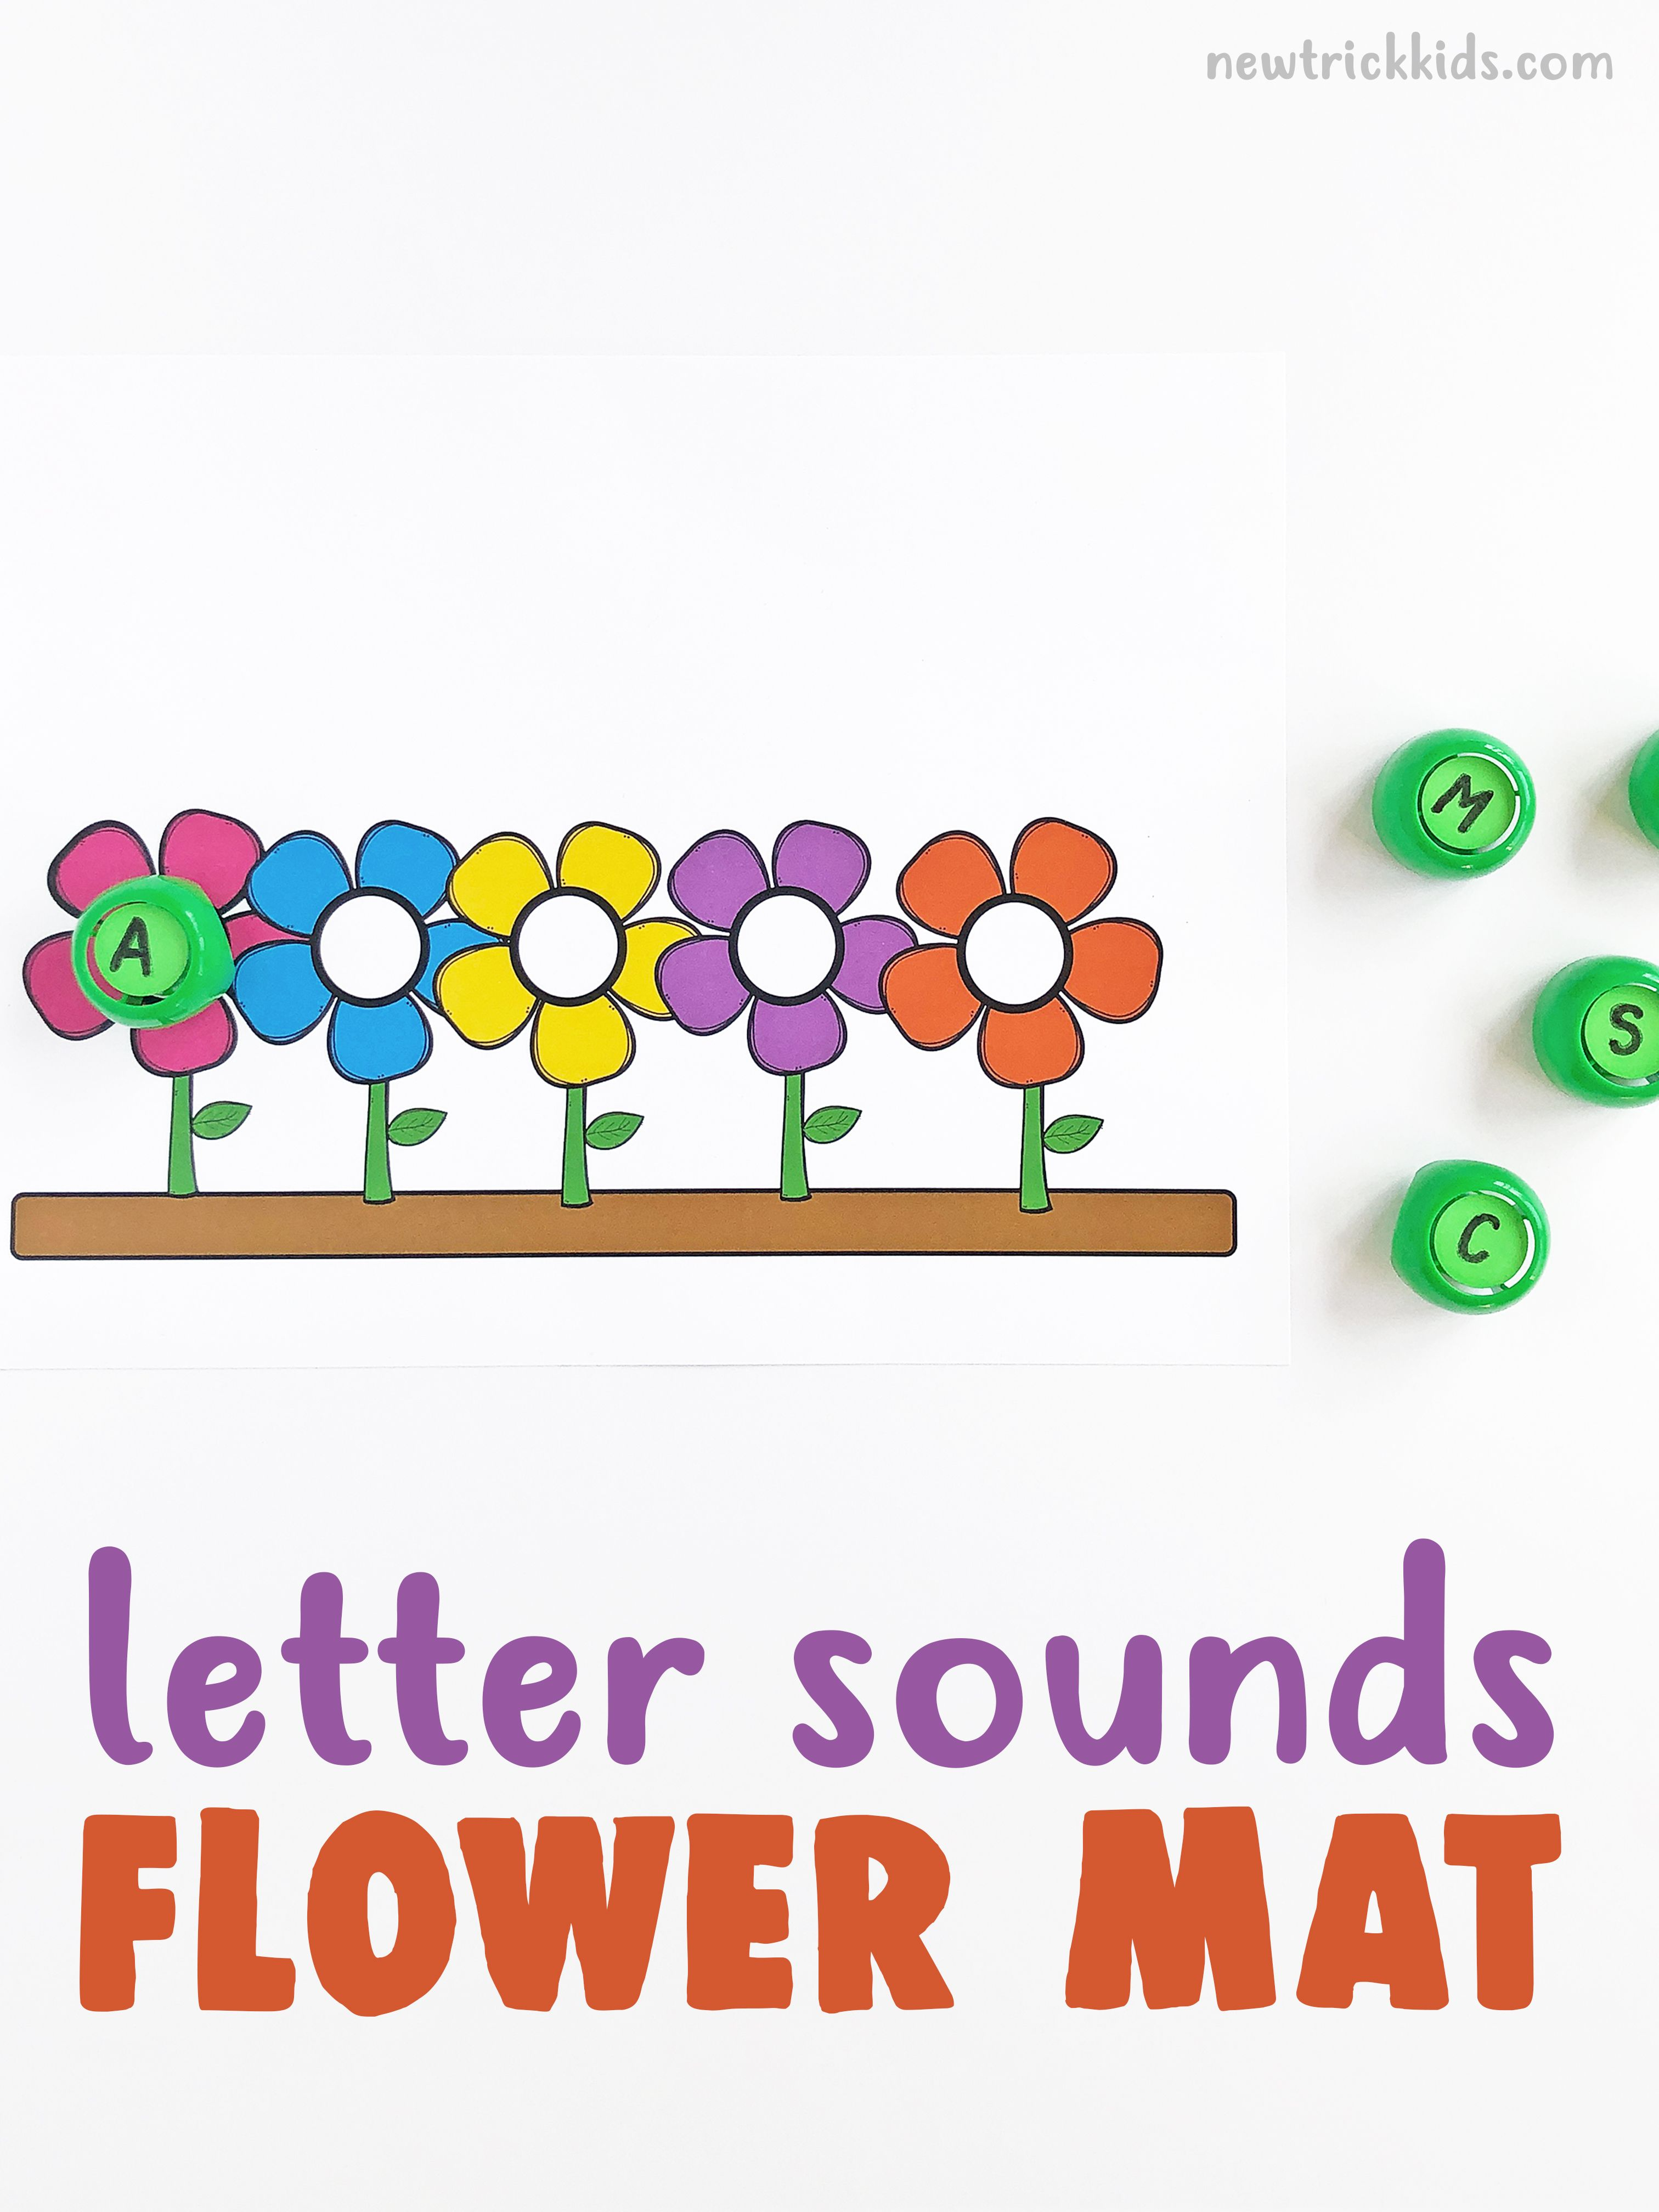 A Simple Way To Teach Letter Sounds And Identification